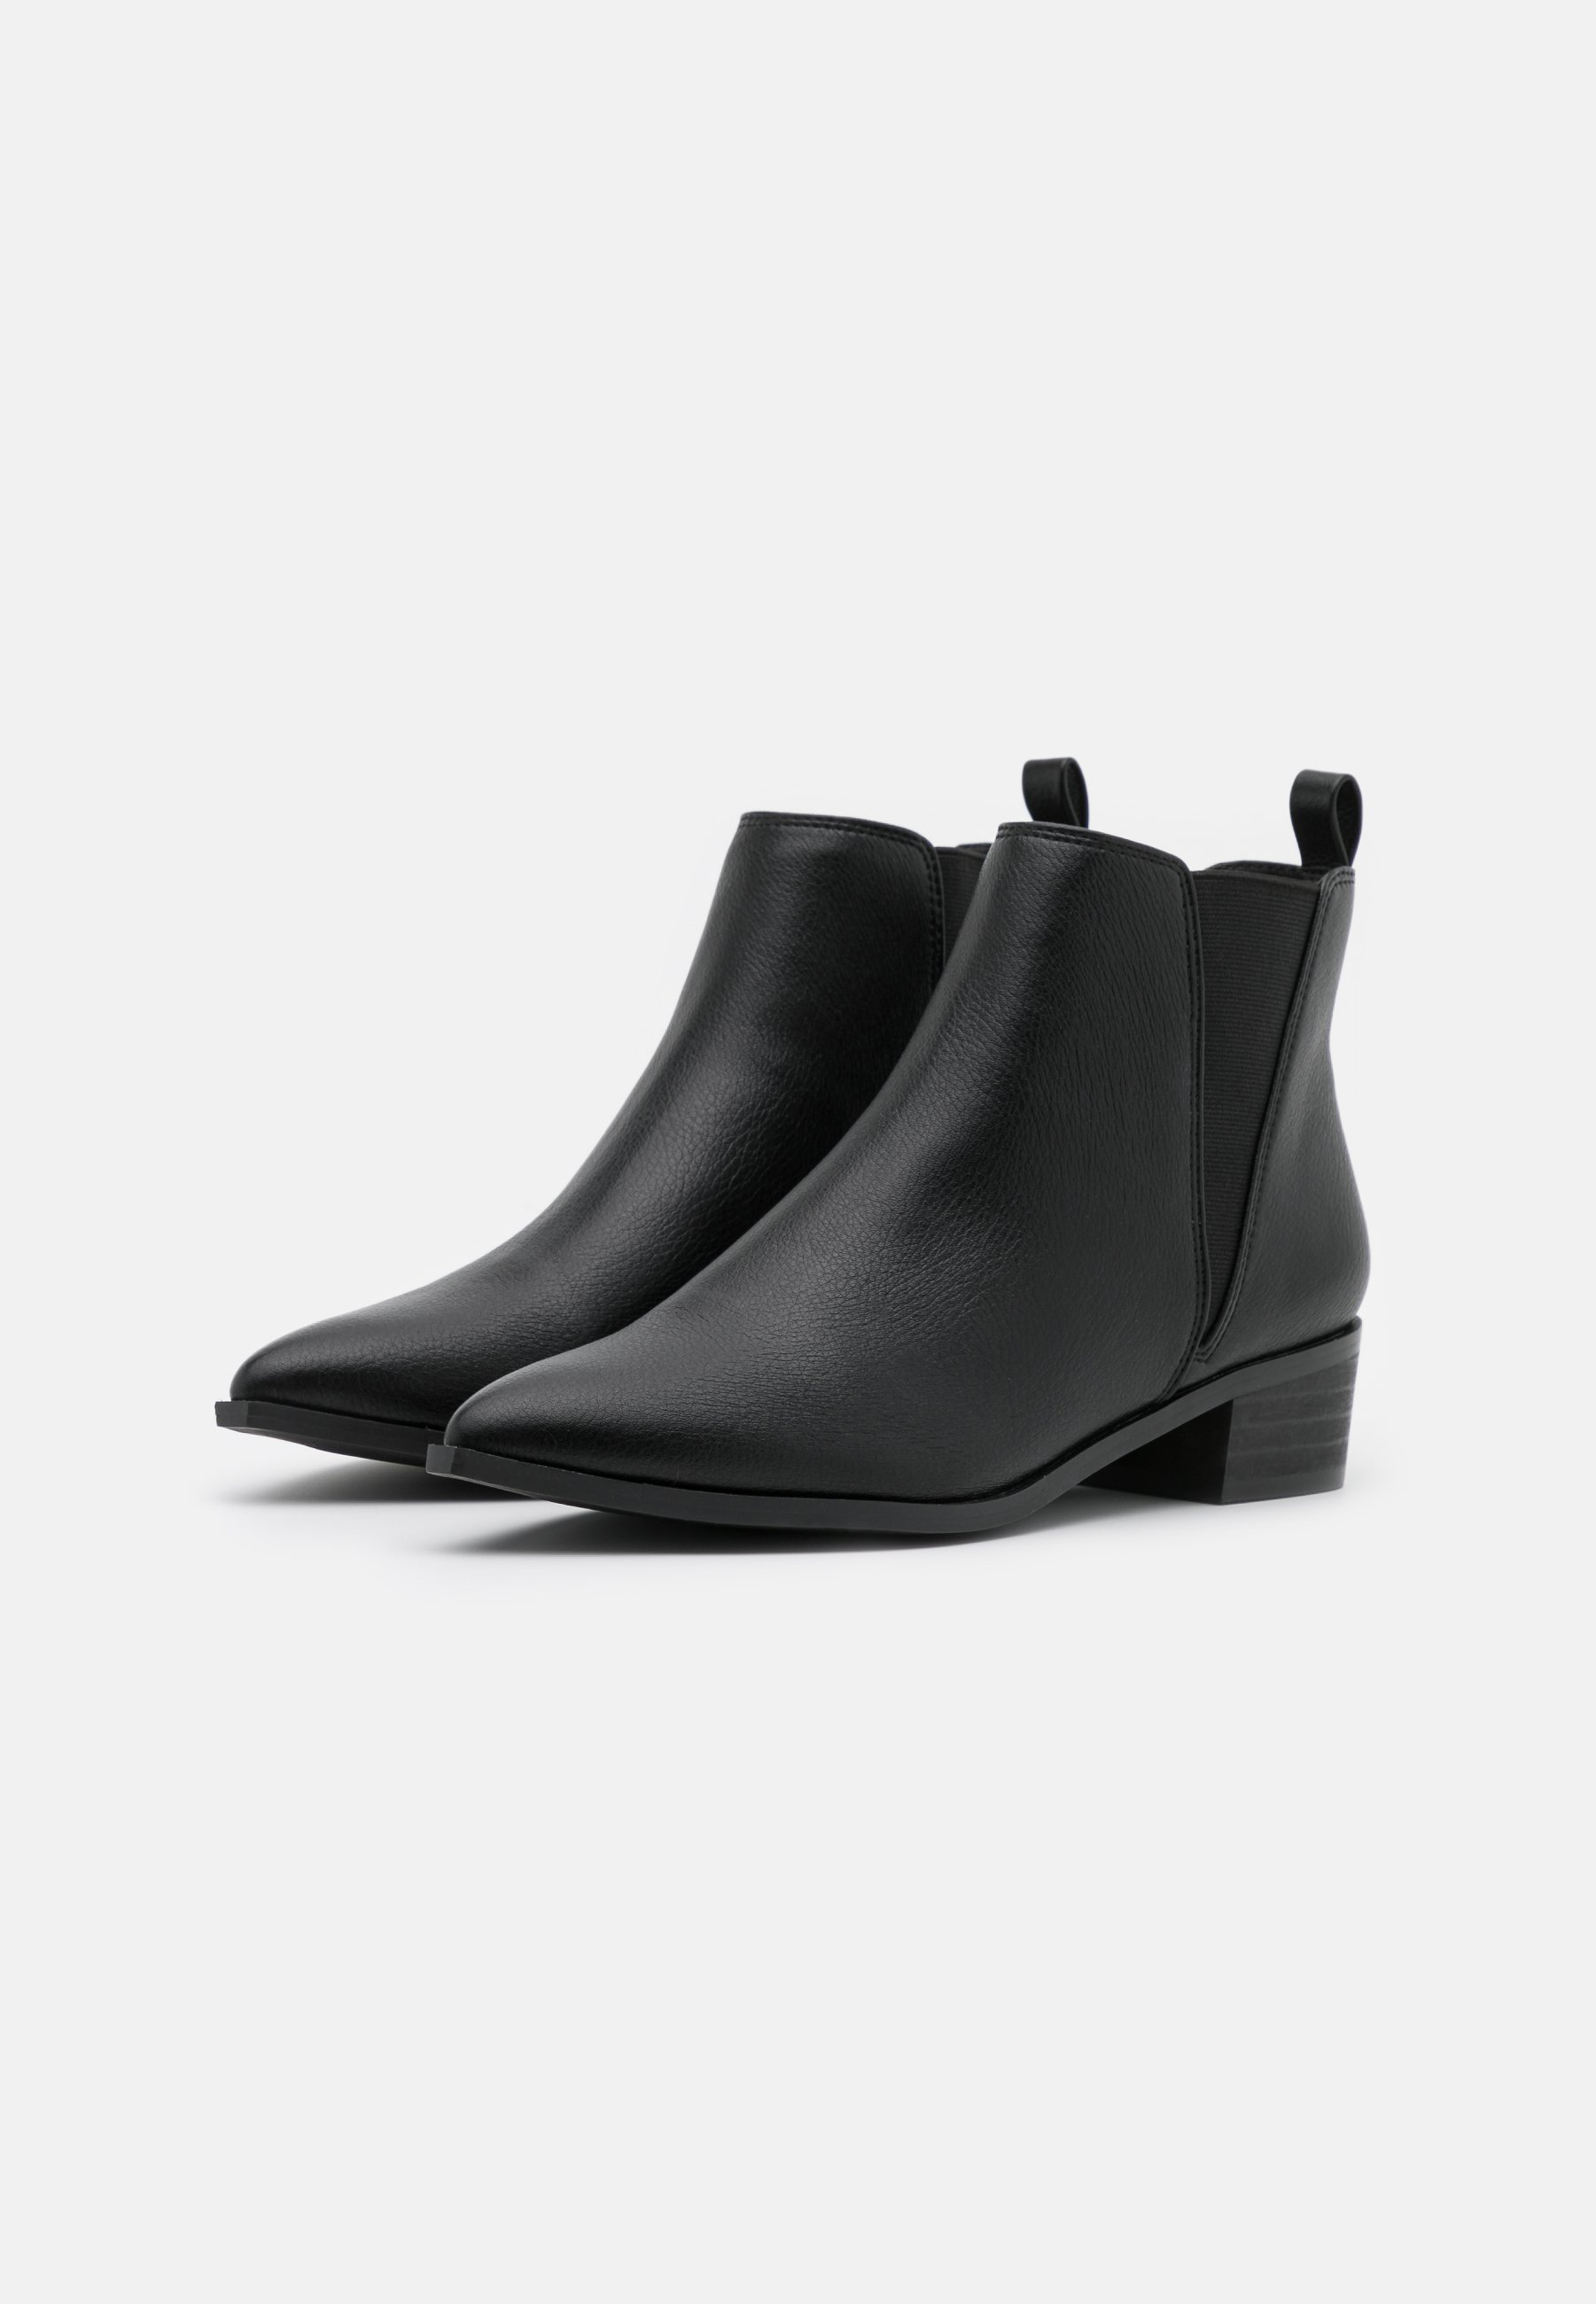 Rubi Shoes by Cotton On SHOREDITCH GUSSET Ankle Boot black/schwarz